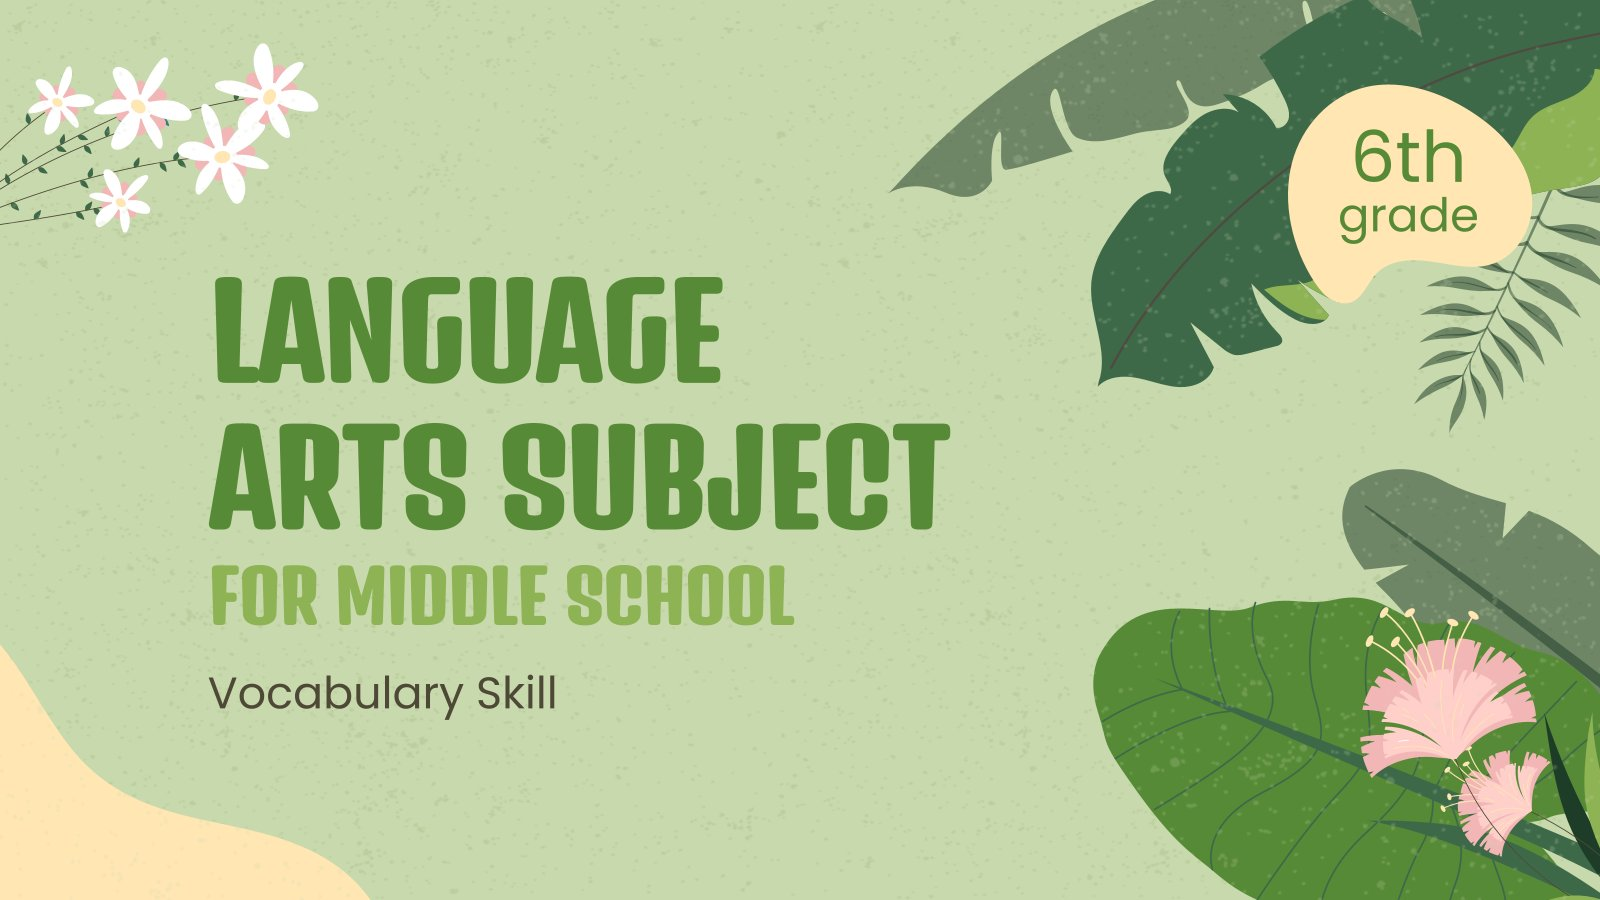 Language Arts Subject for Middle School presentation template